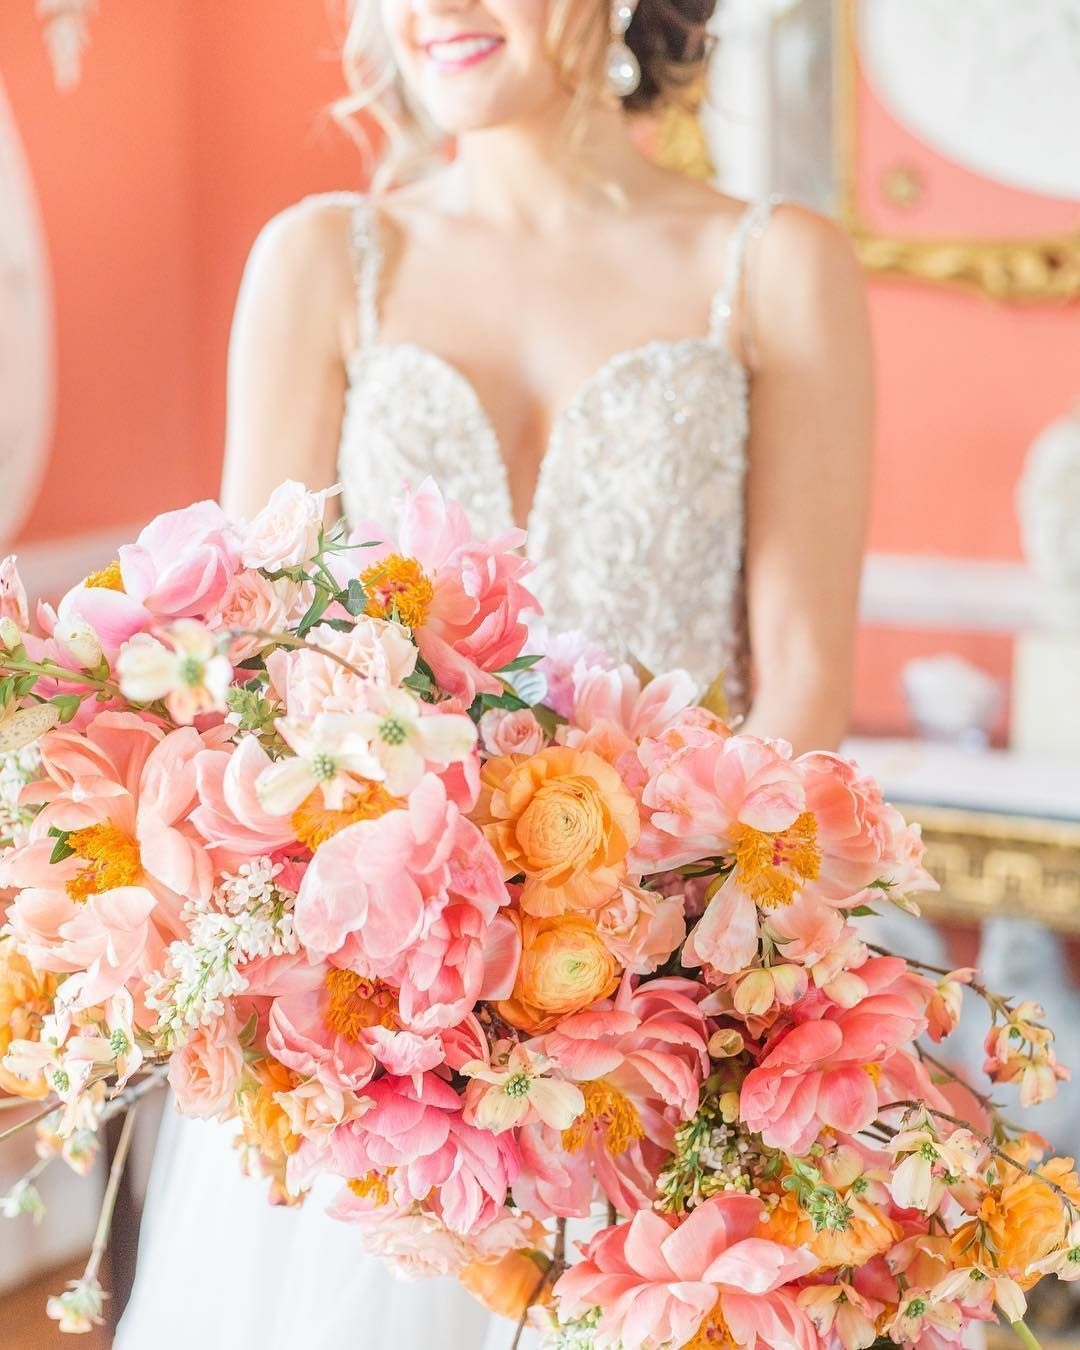 32 Living Coral Wedding Ideas for Any Season - Amaze Paperie